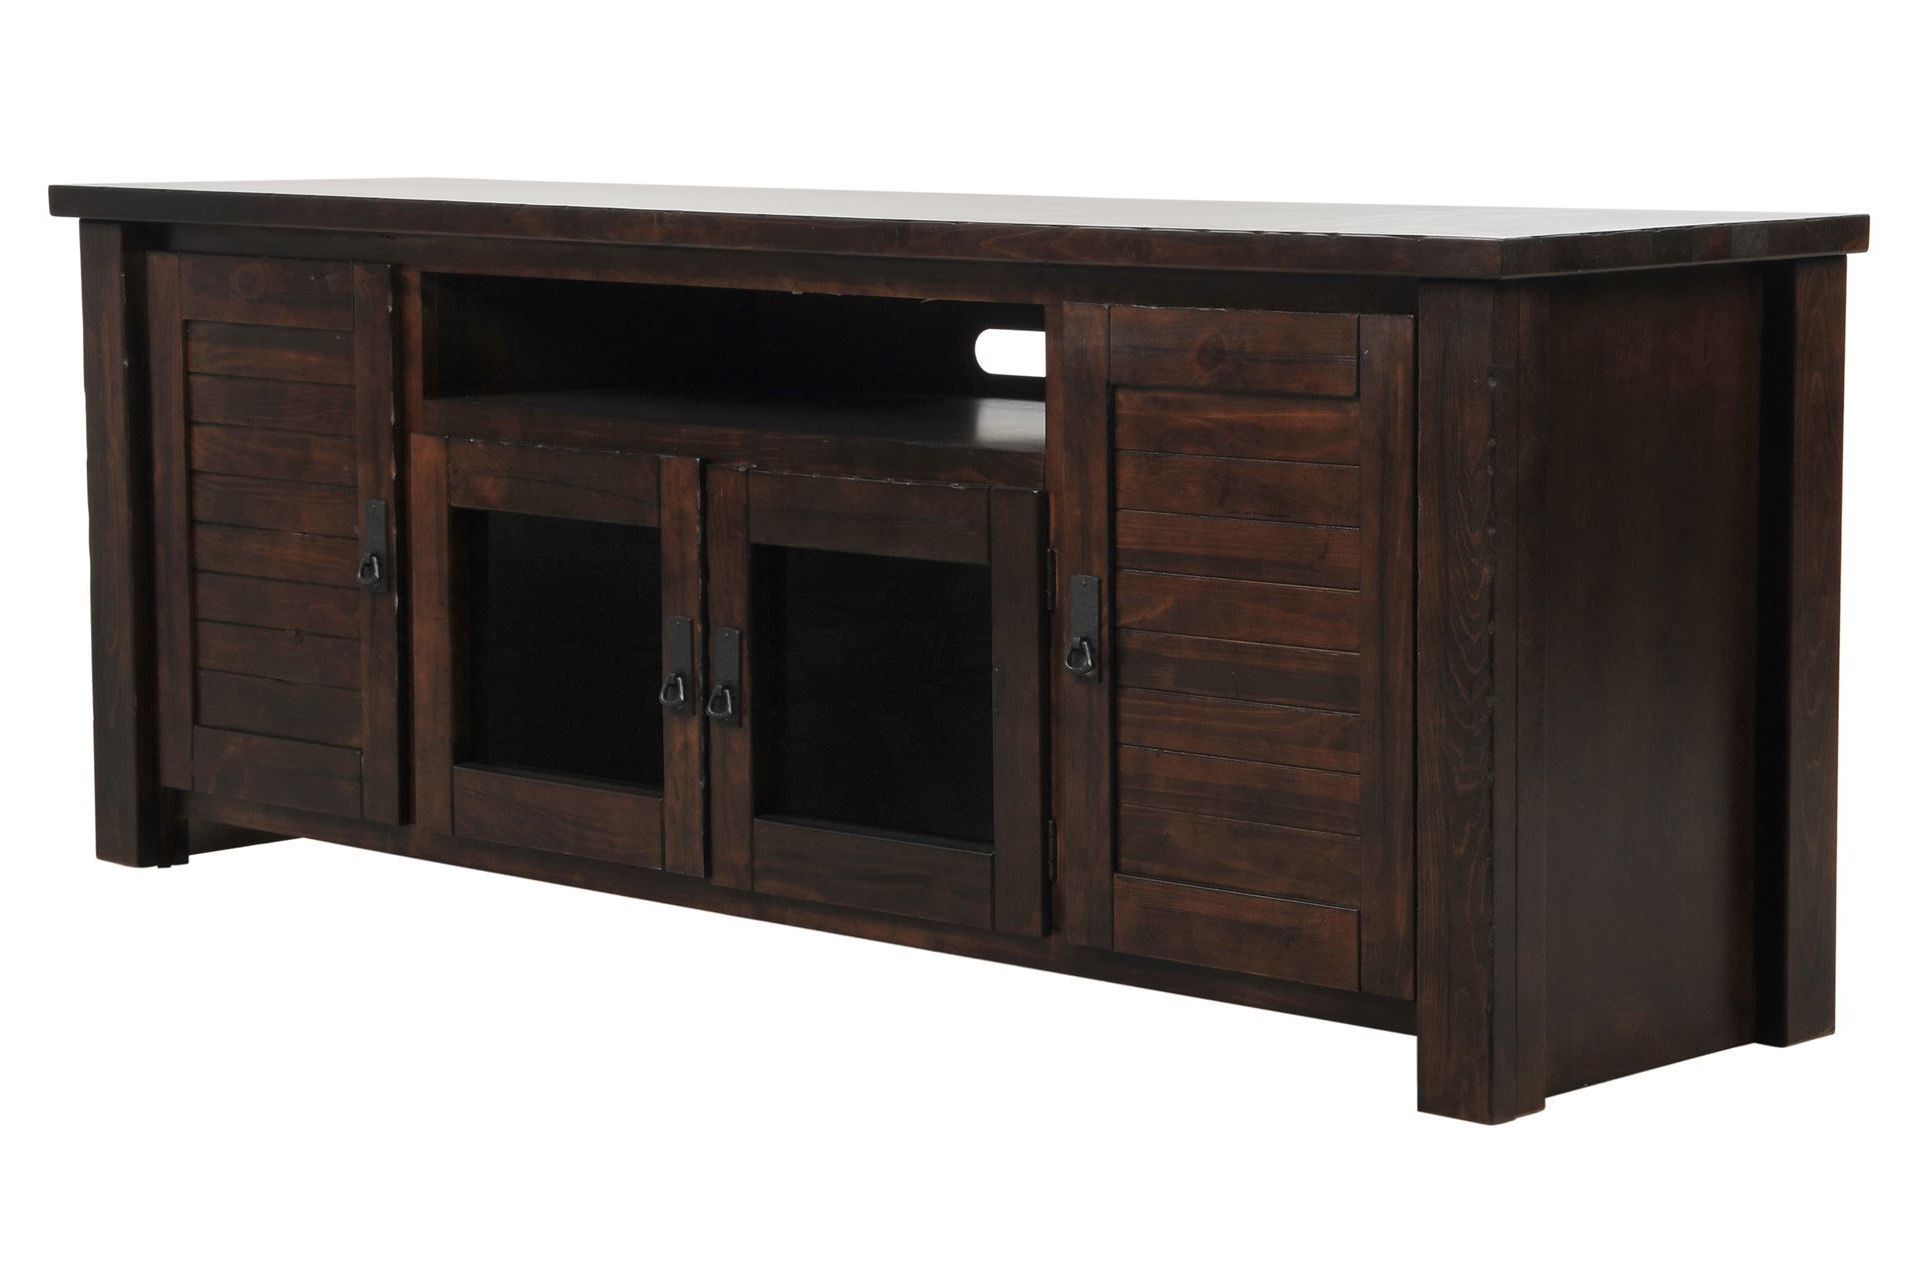 74 Inch Tv Stand, Canyon, Brown | Consoles, Living Rooms And Men Cave Throughout Canyon 74 Inch Tv Stands (Gallery 1 of 20)